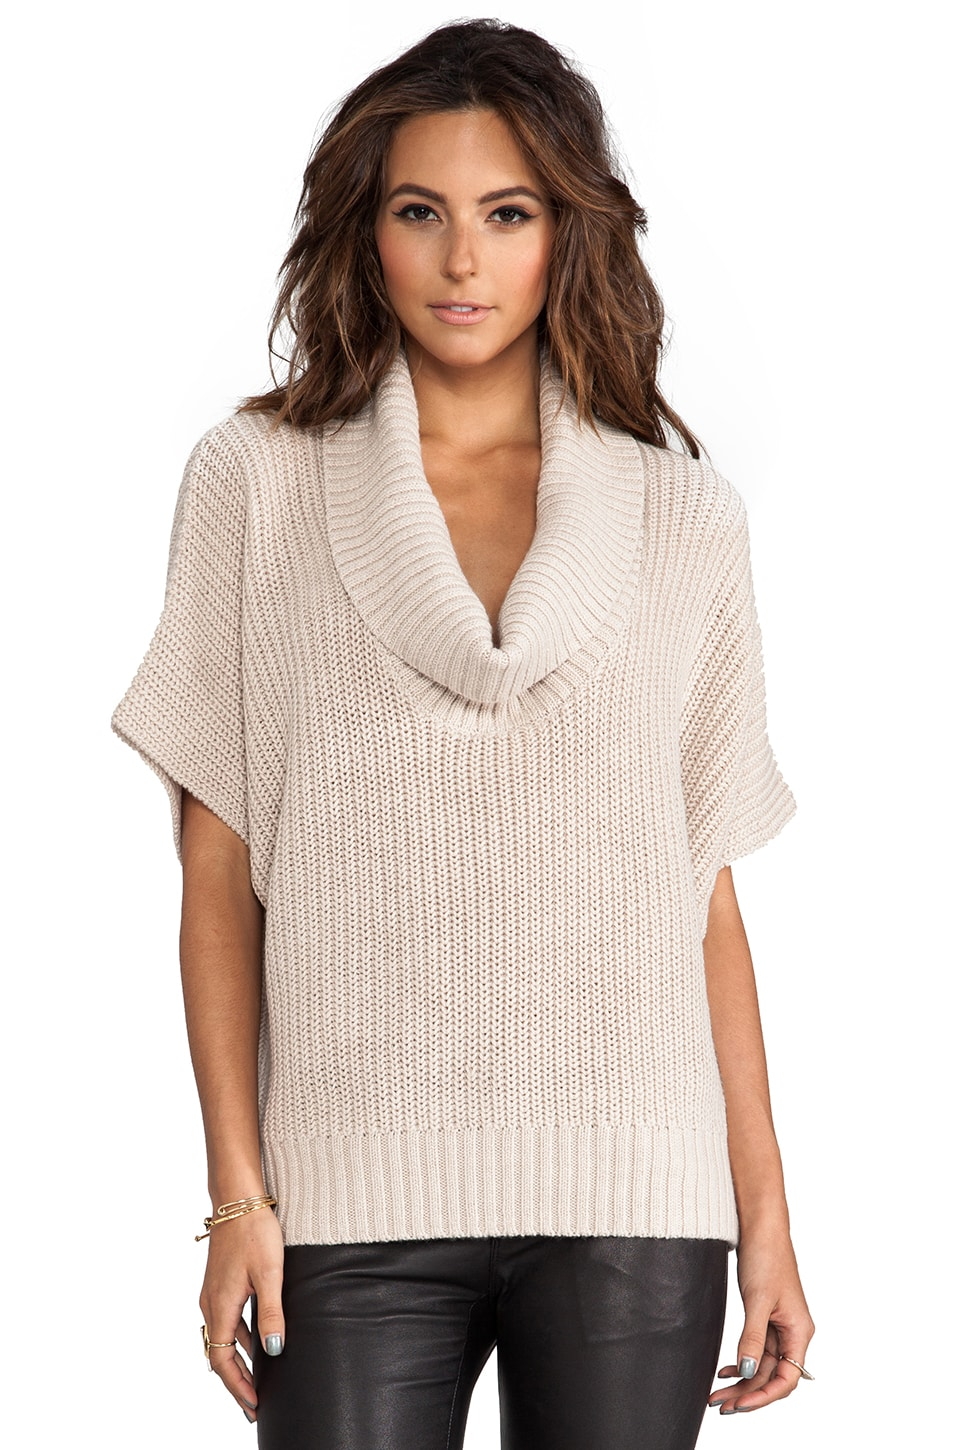 Trina Turk Zian Sweater in Camel